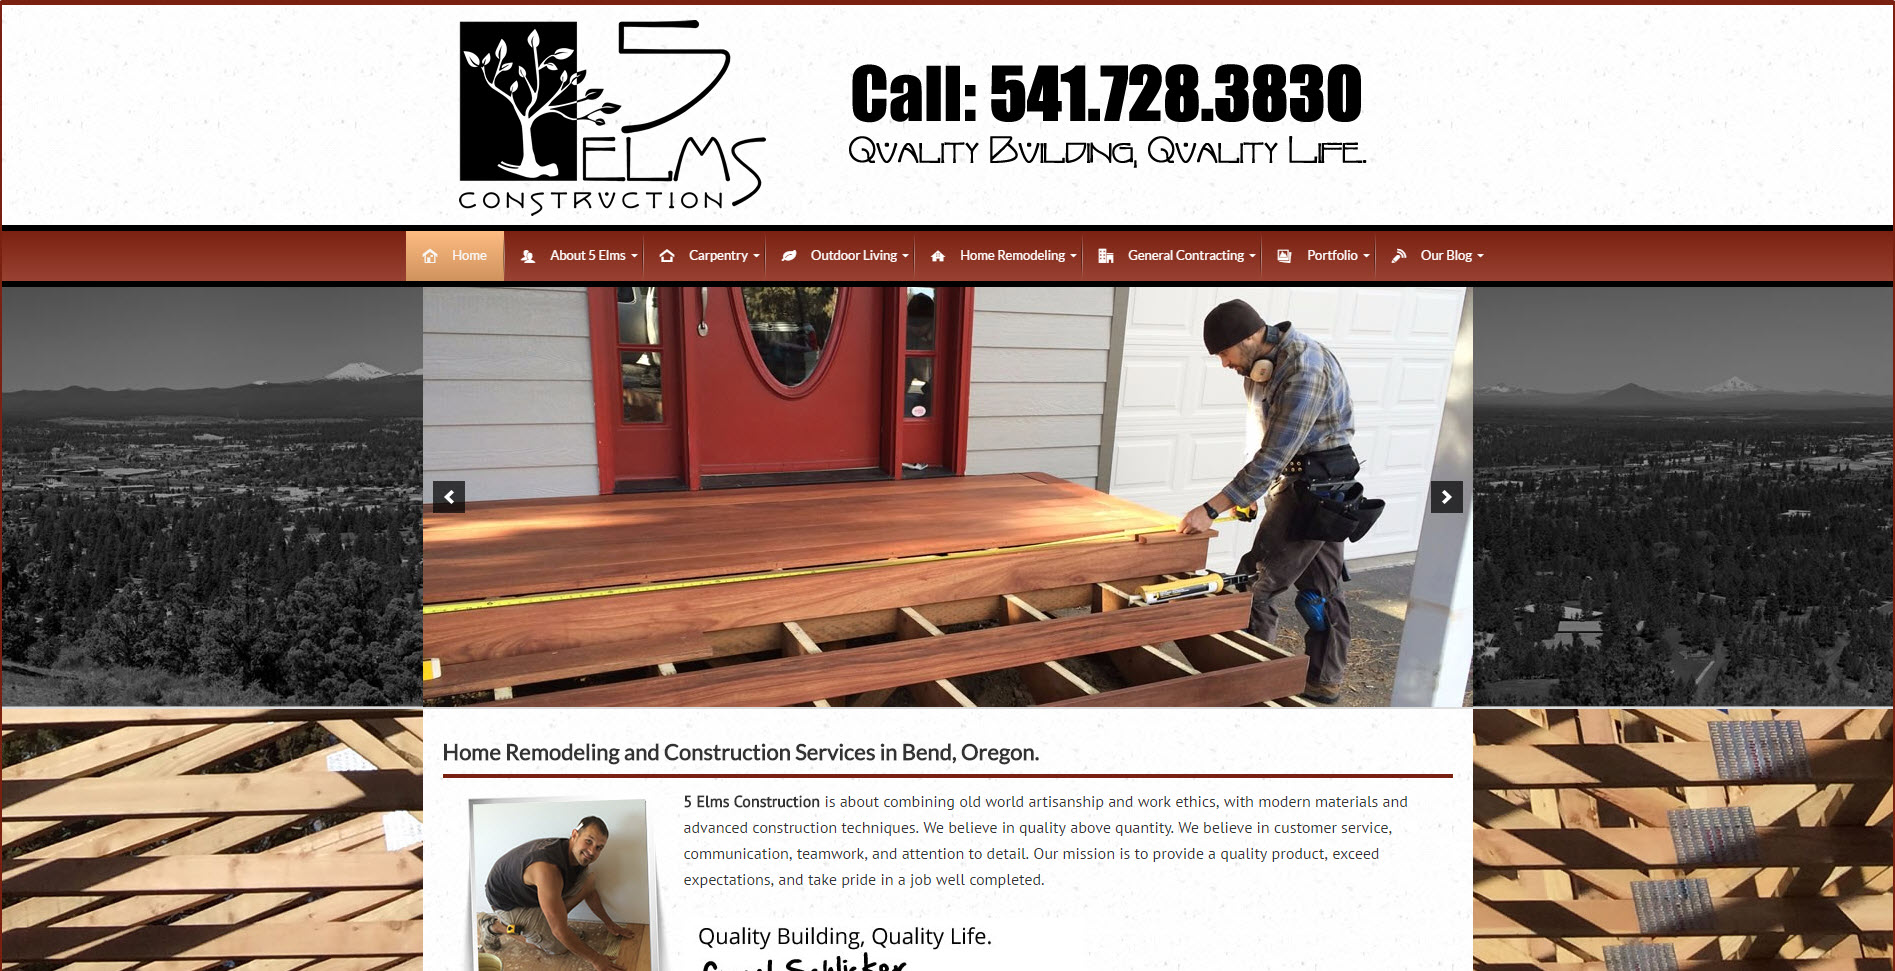 website design for contractors sites4contractors com remodeling contractor website 5elms remodeling website